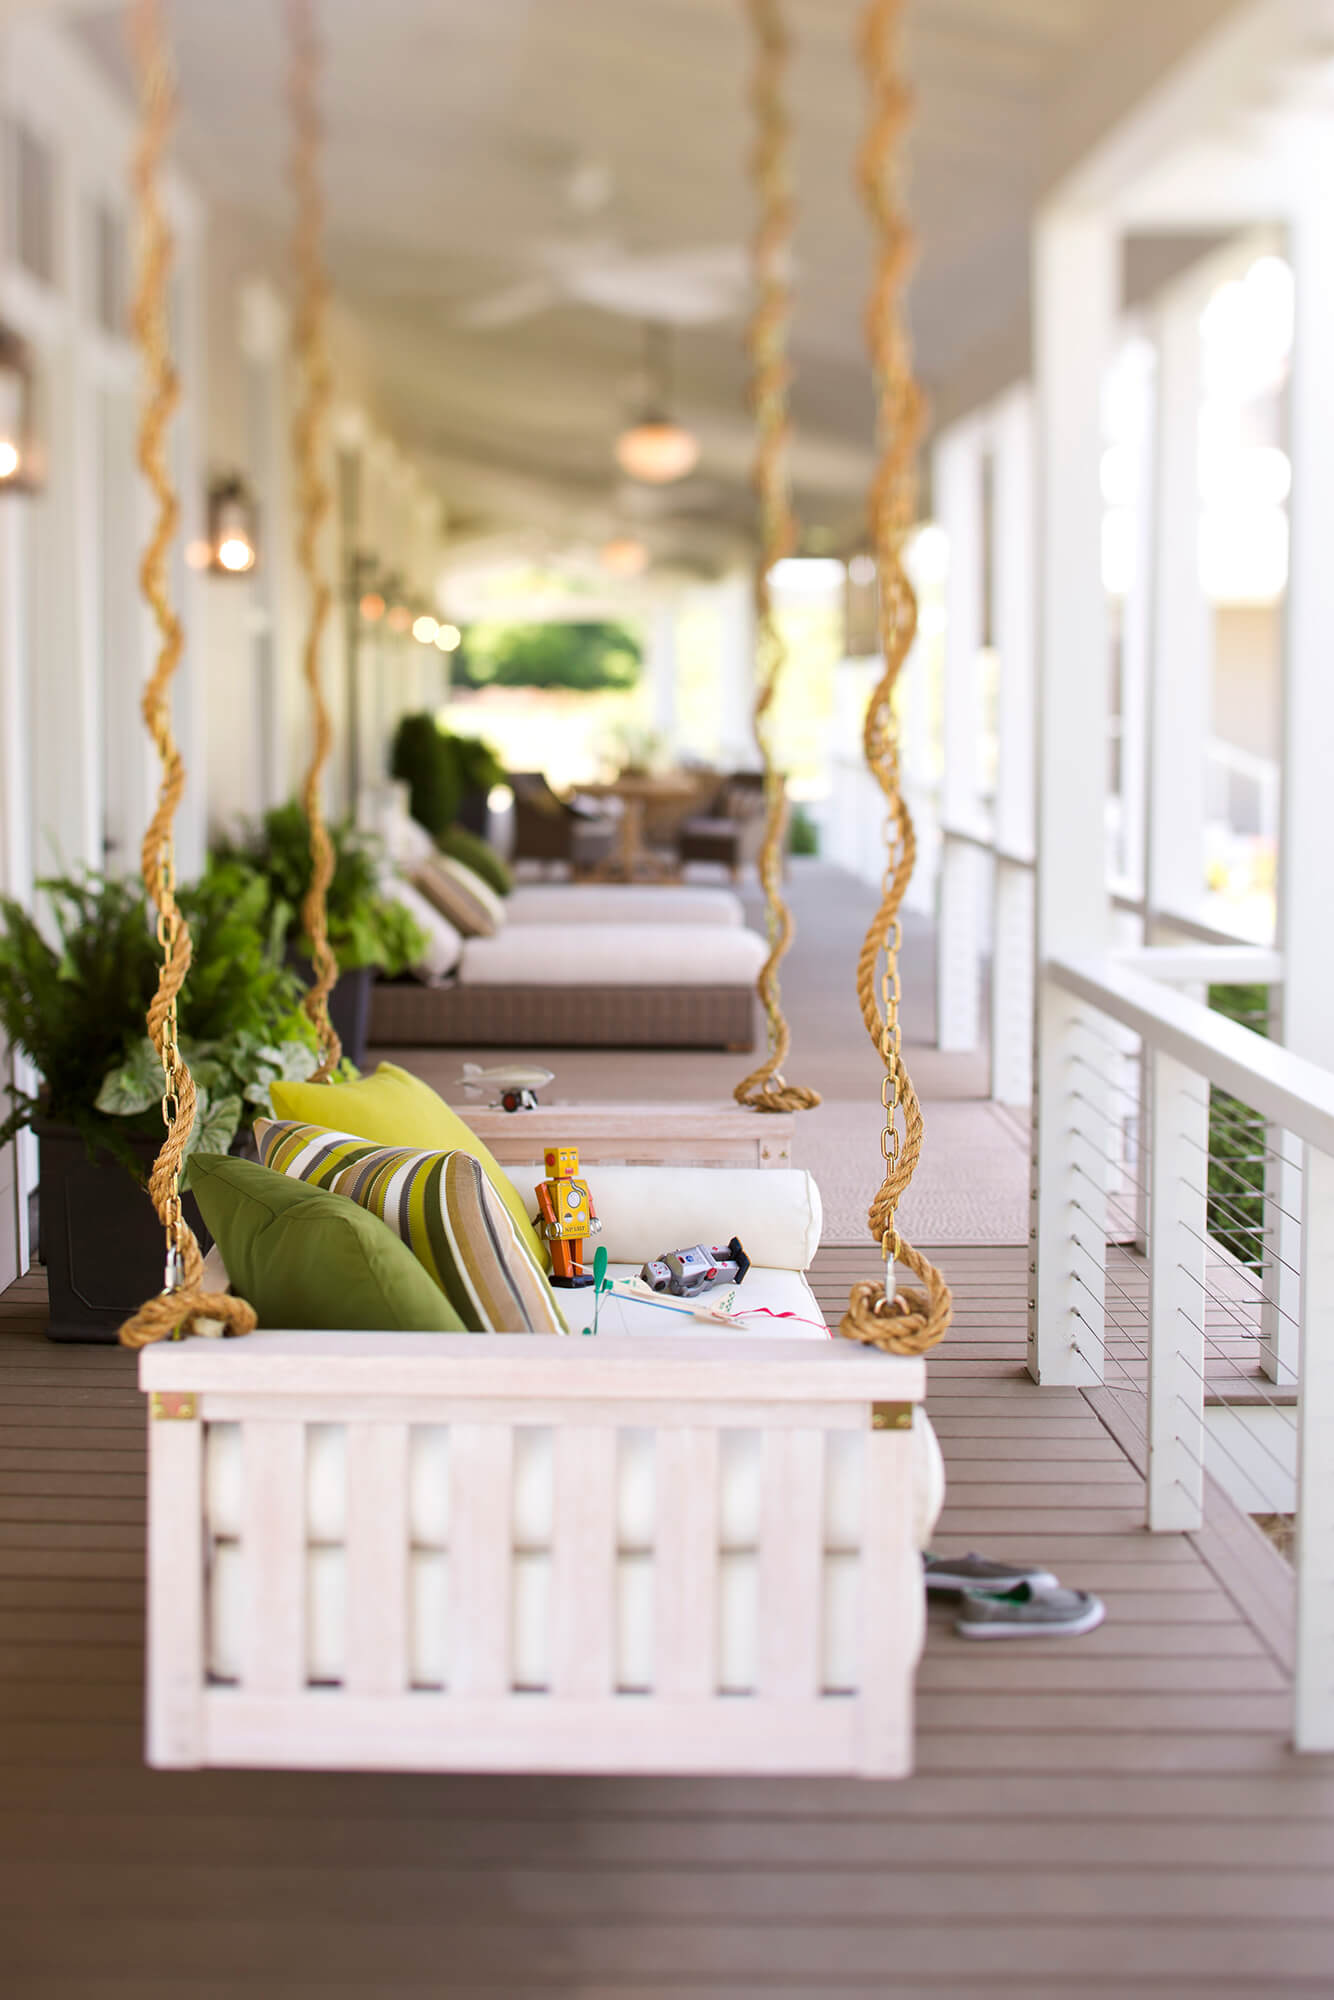 A porch swing is accented with green hued throw pillows